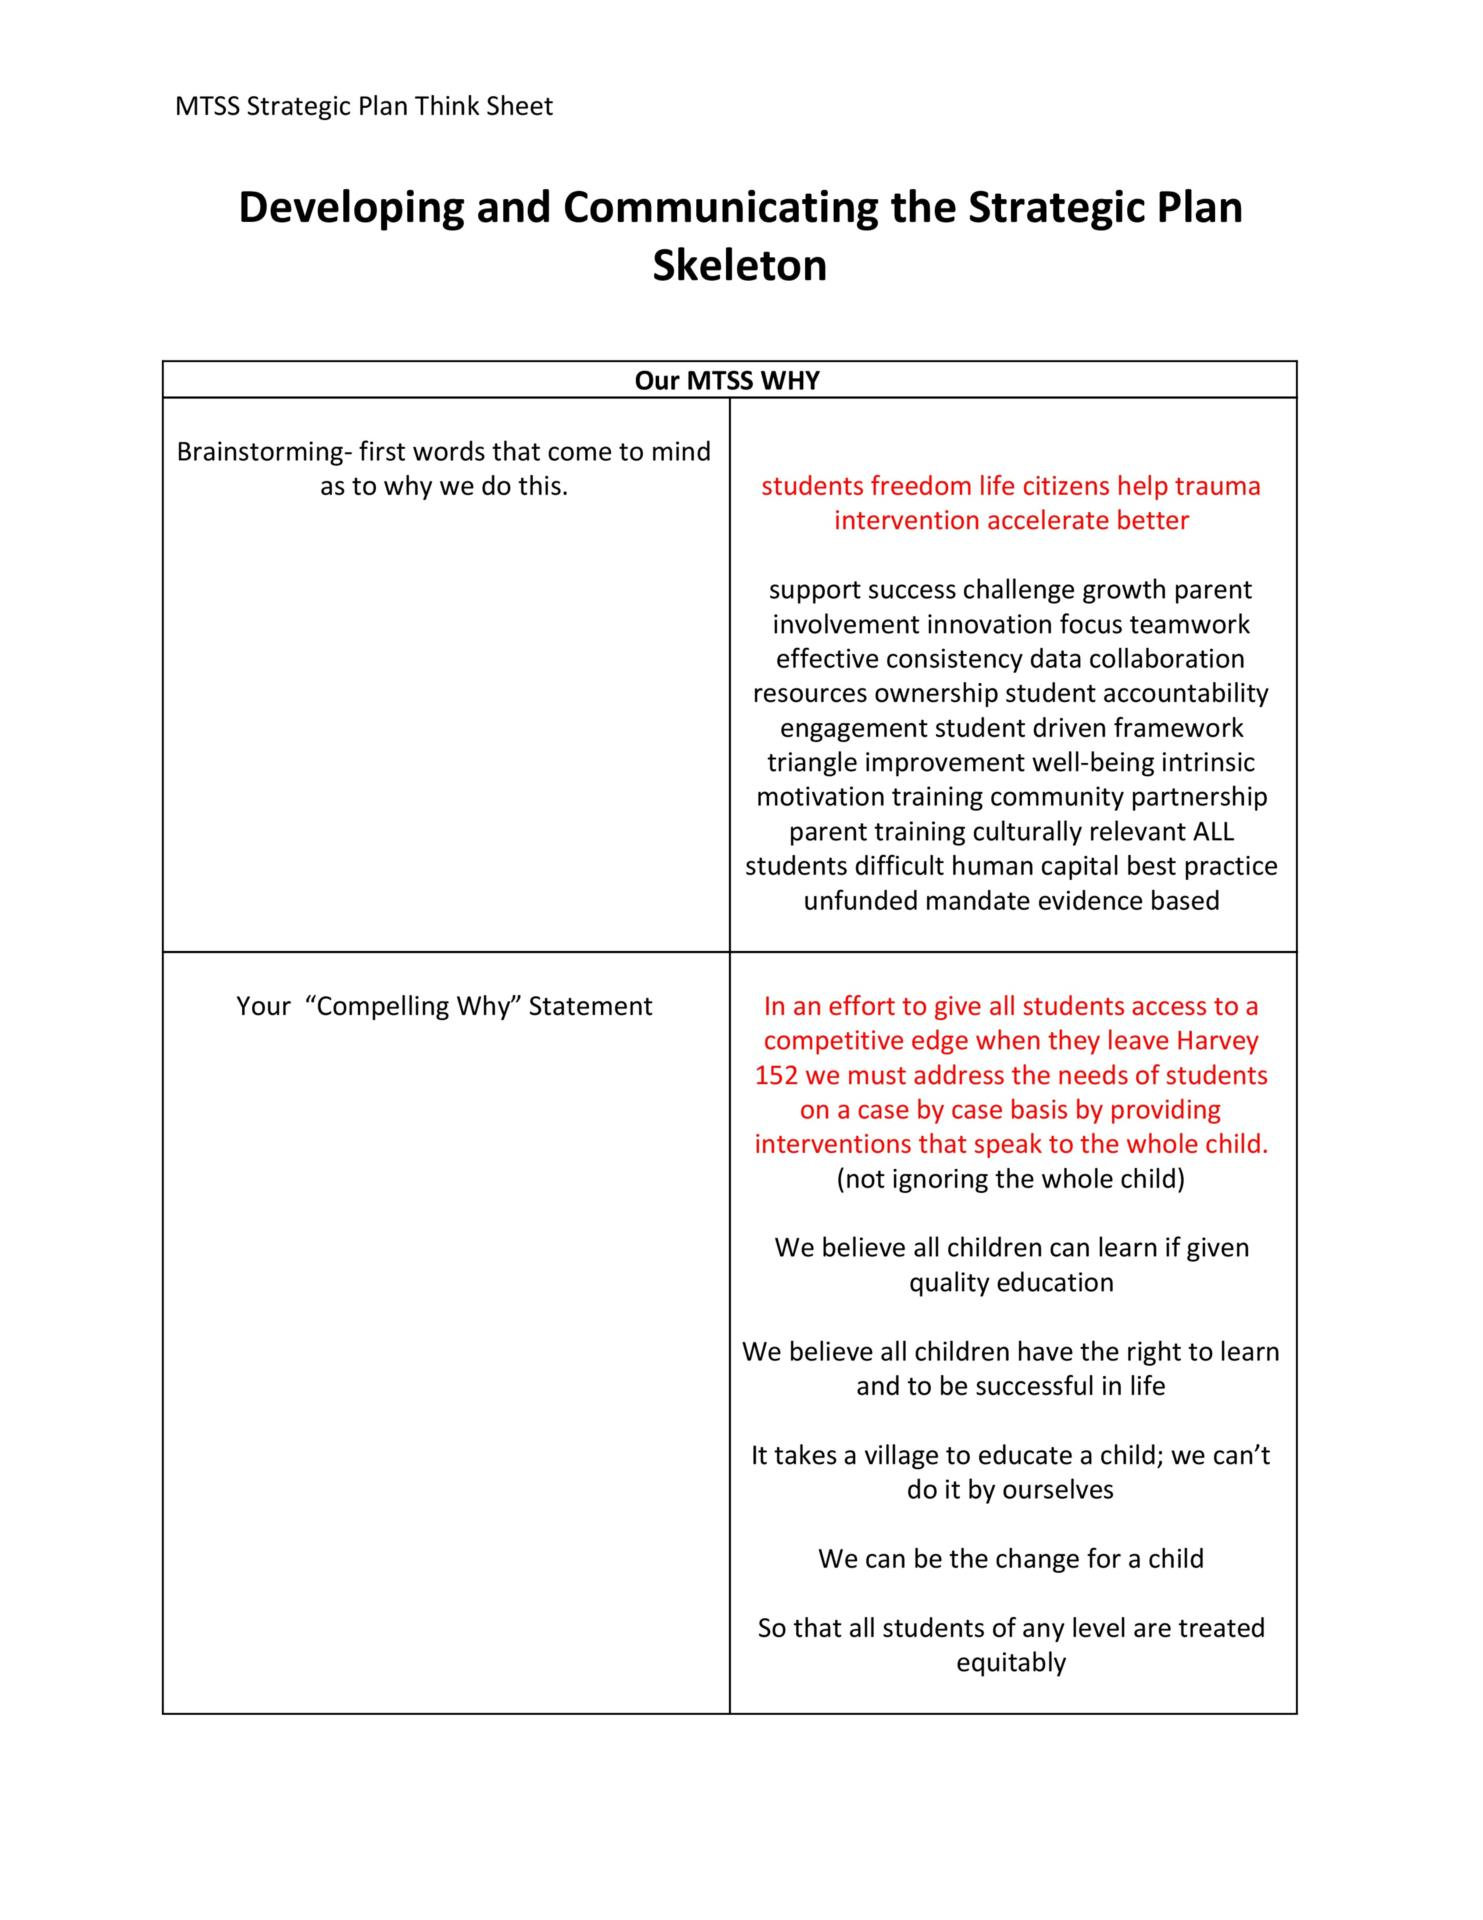 MTSS Strategic Plan Think Sheet Page 1